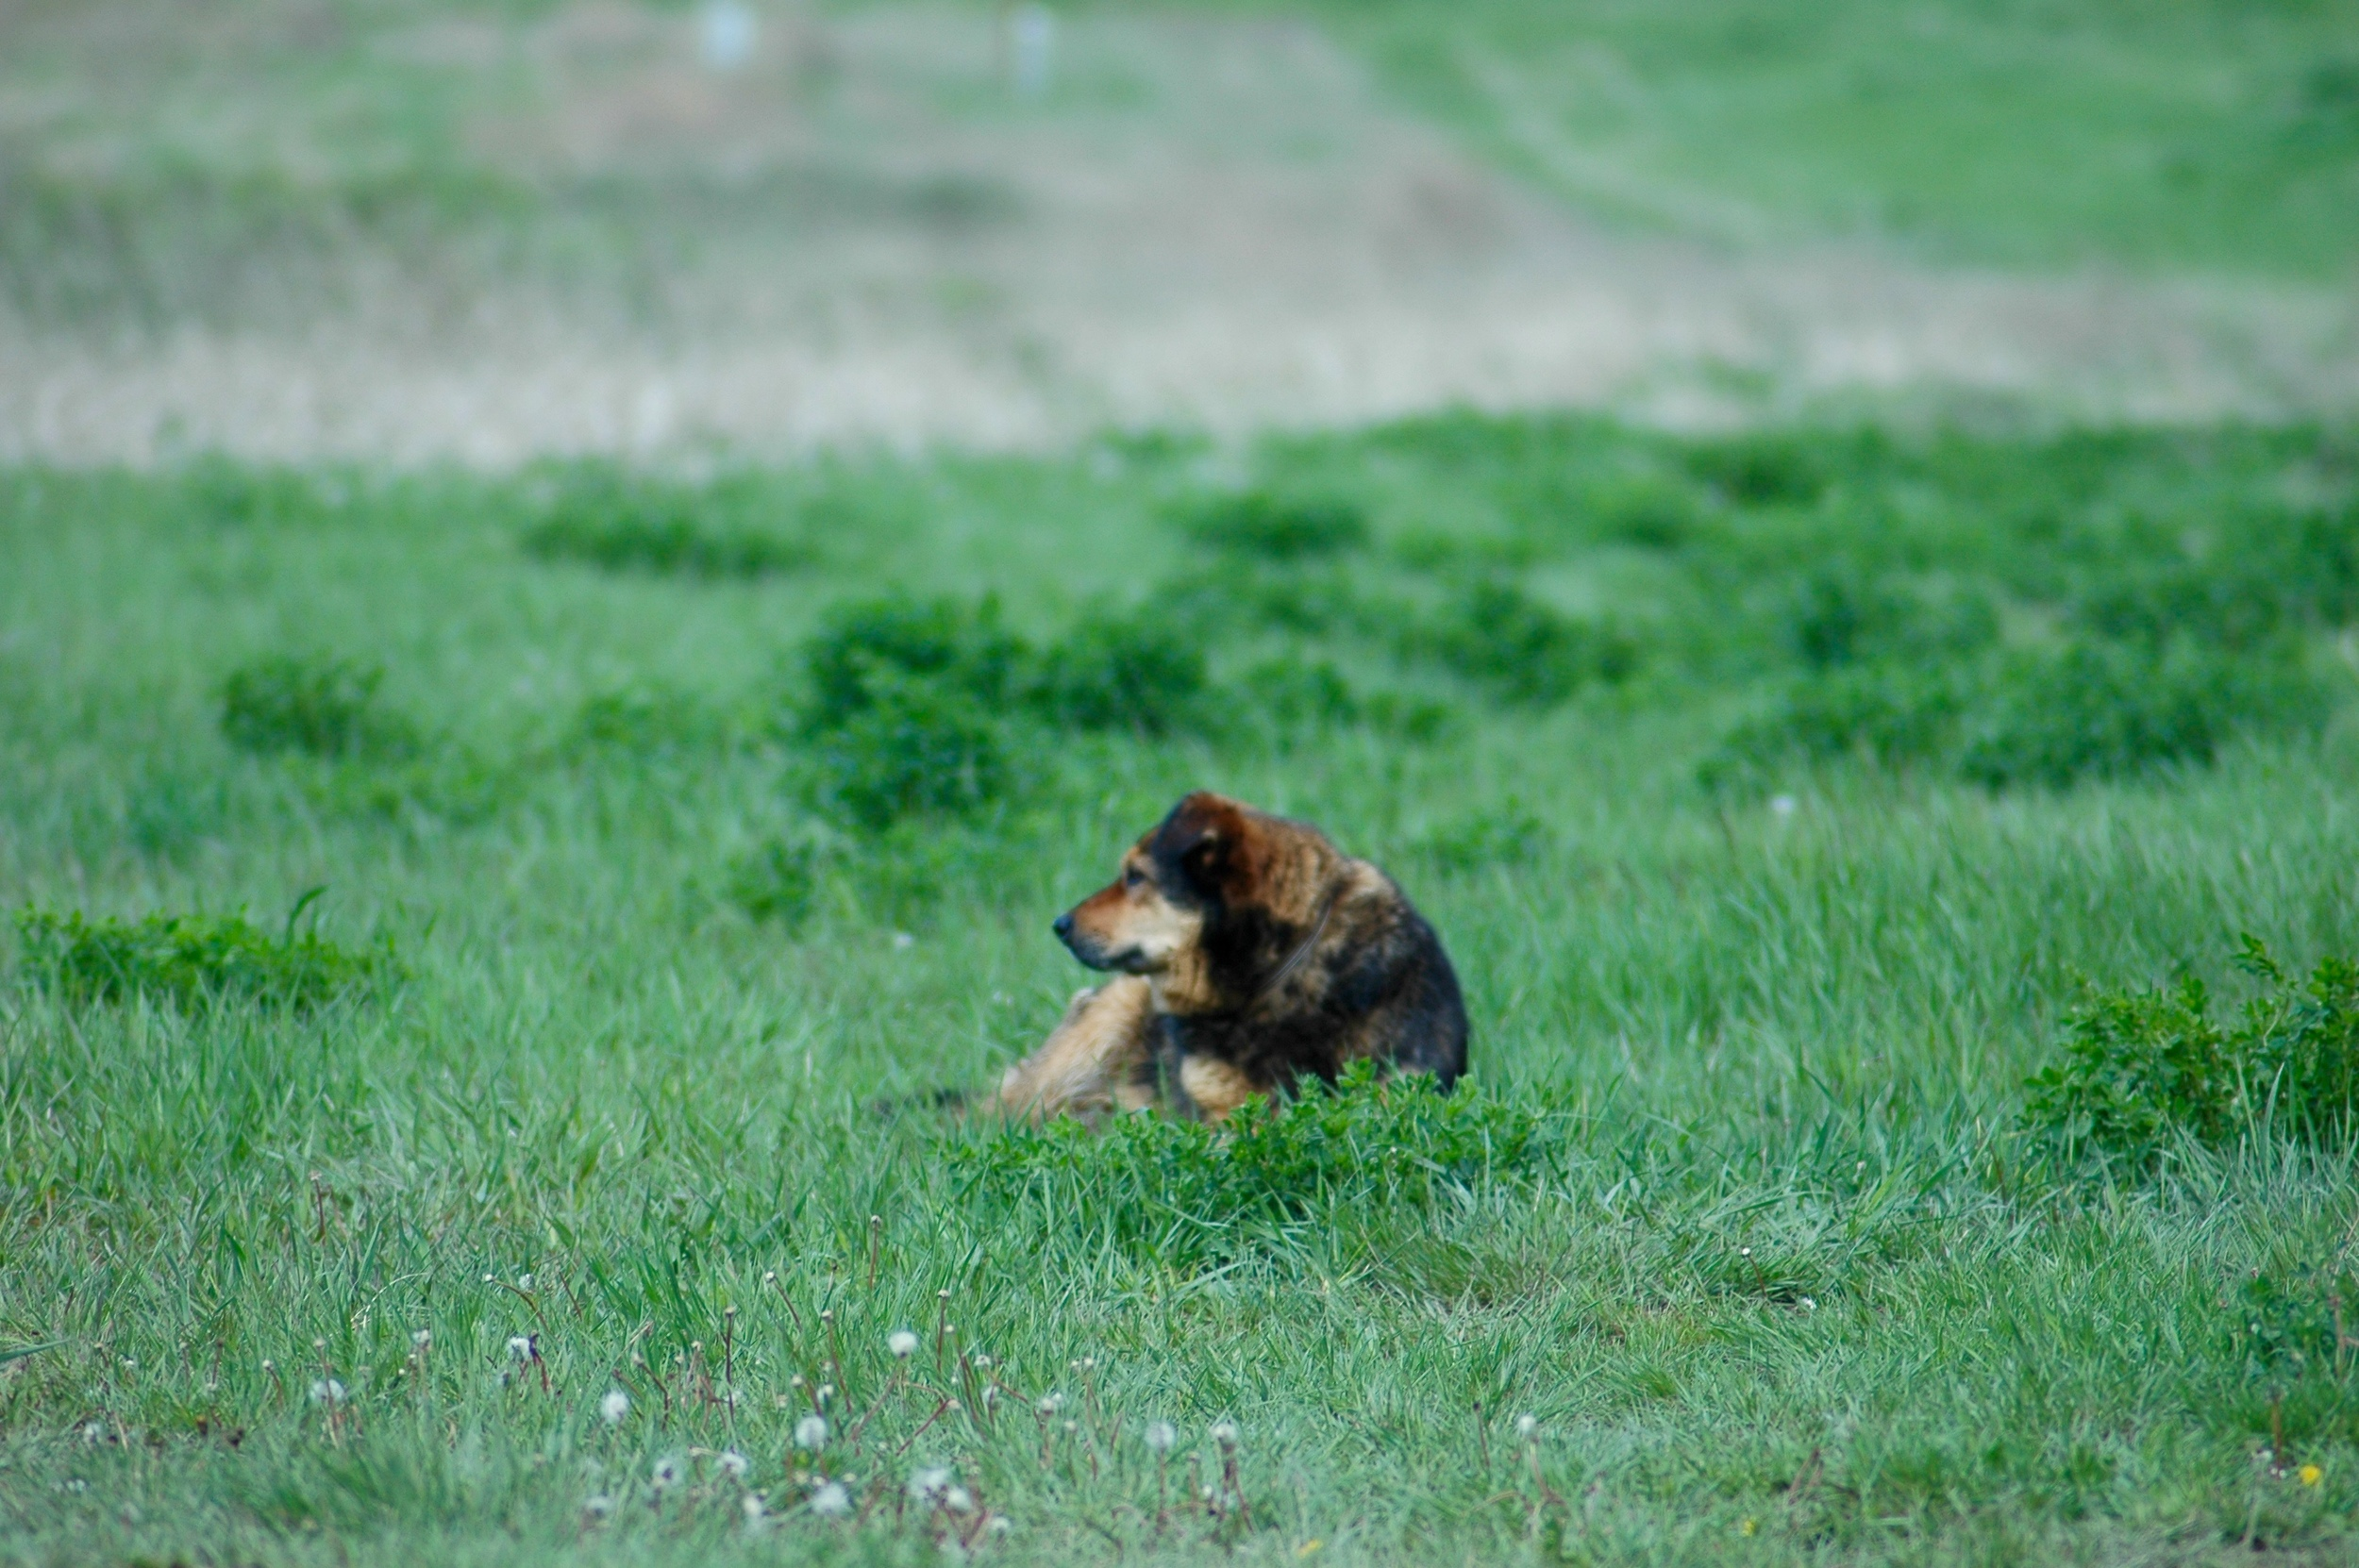 Our loyal companion, Copper, taking a rest. (A.Gross, La Plant, May 2015)